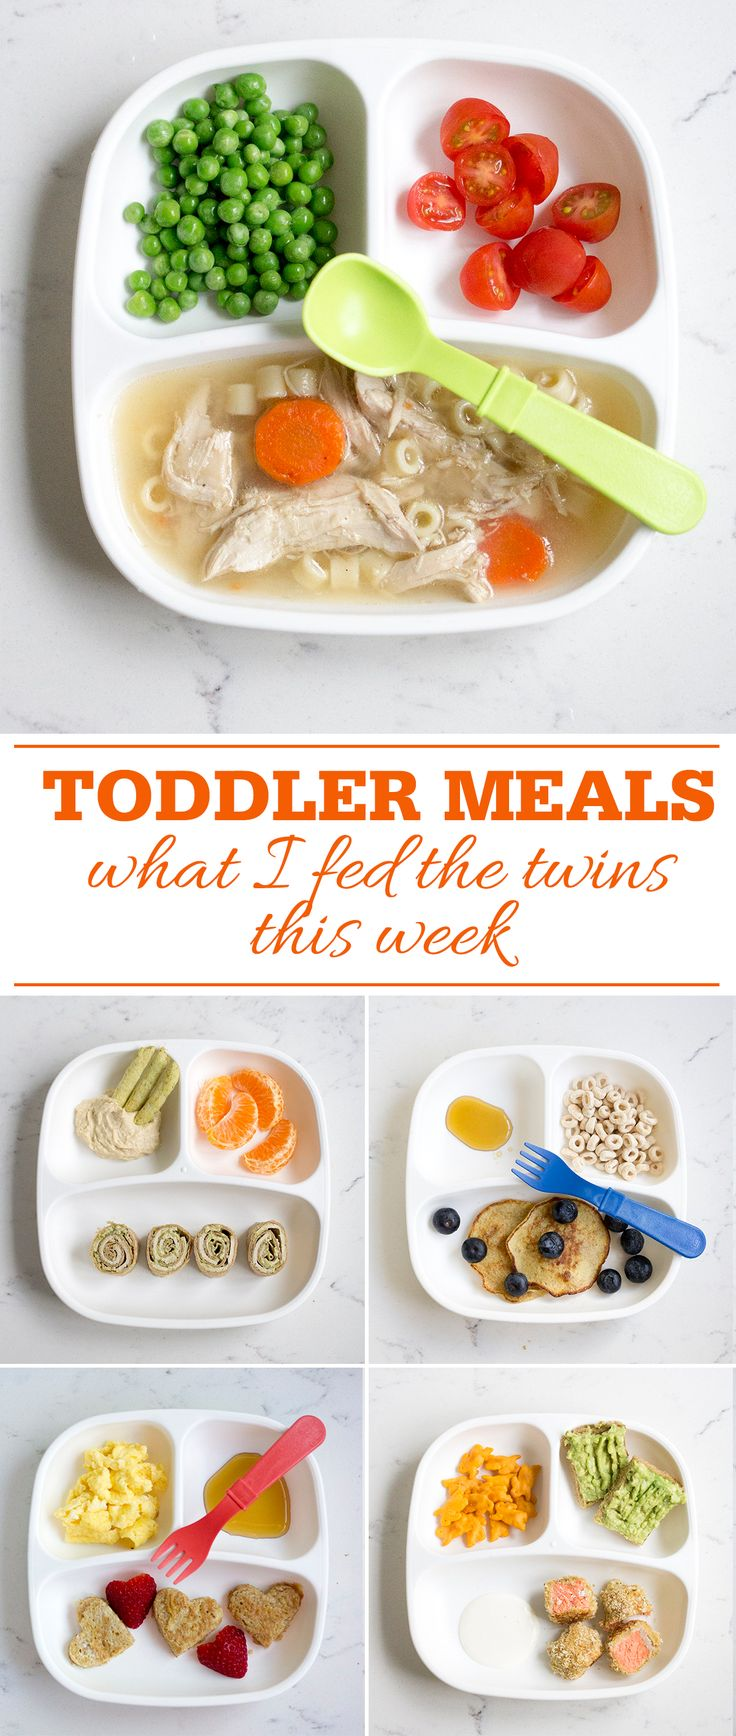 Toddler Meals What I fed my twins this week. Healthy